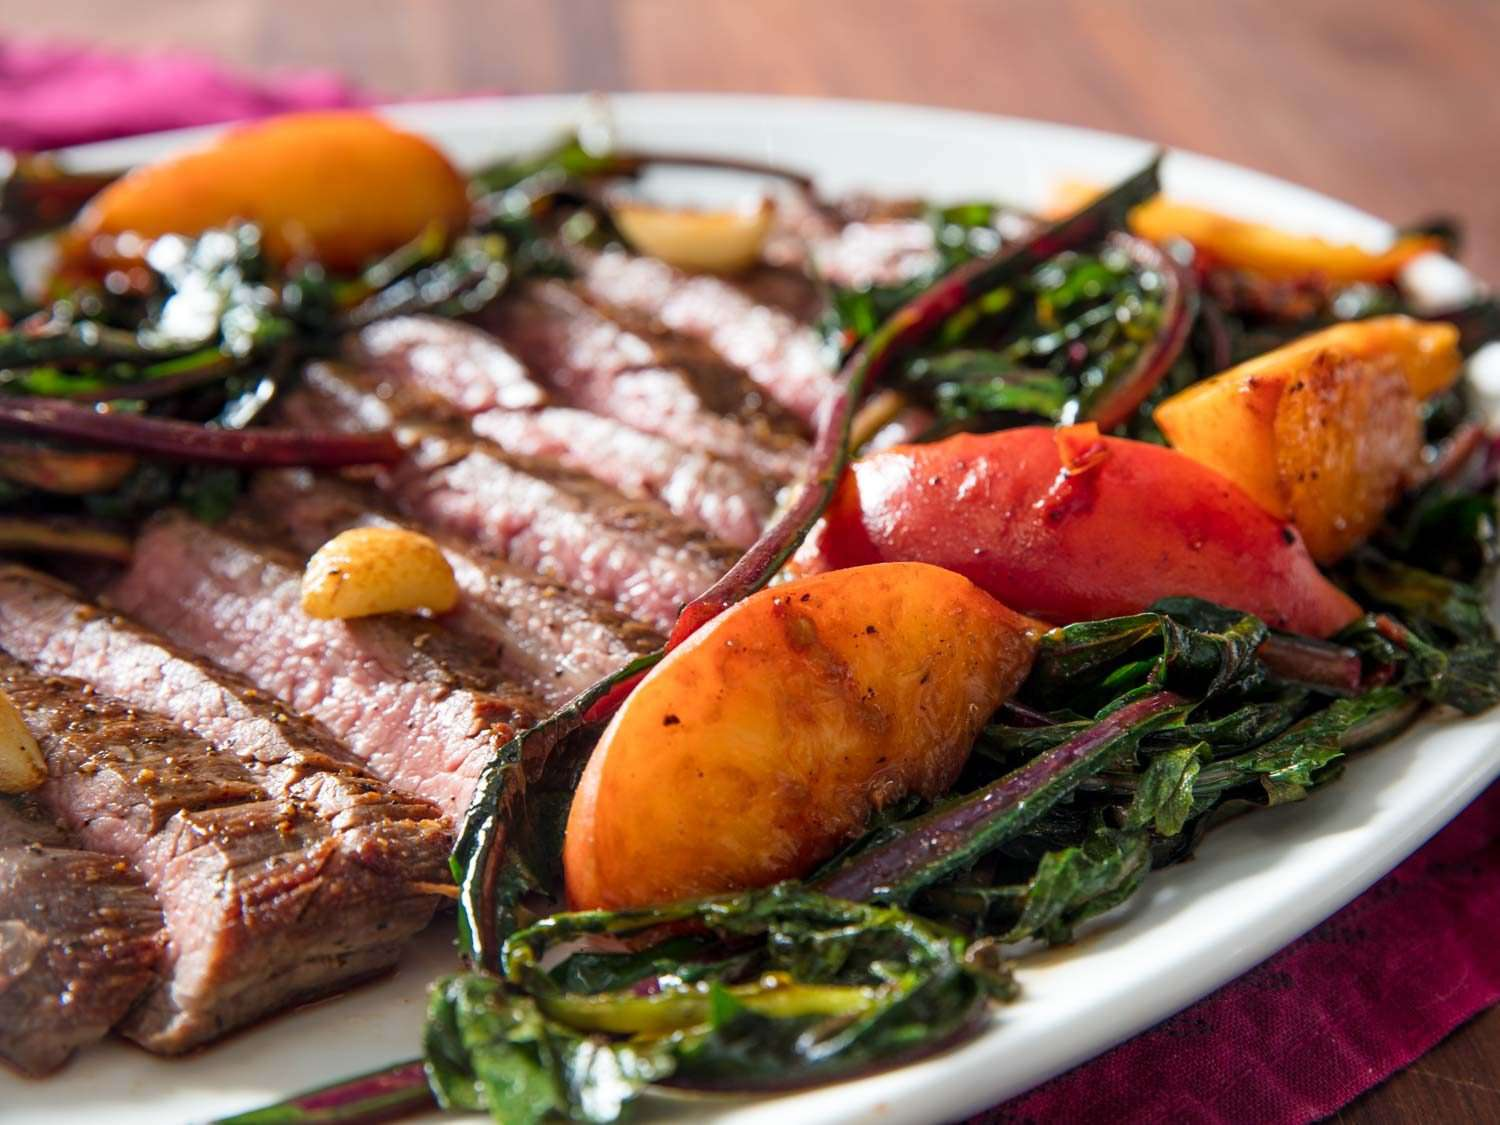 Close-up of sliced pan-seared flank steak accompanied by seared whole garlic cloves, seared peach slices, and wilted dandelion greens, on a white dish